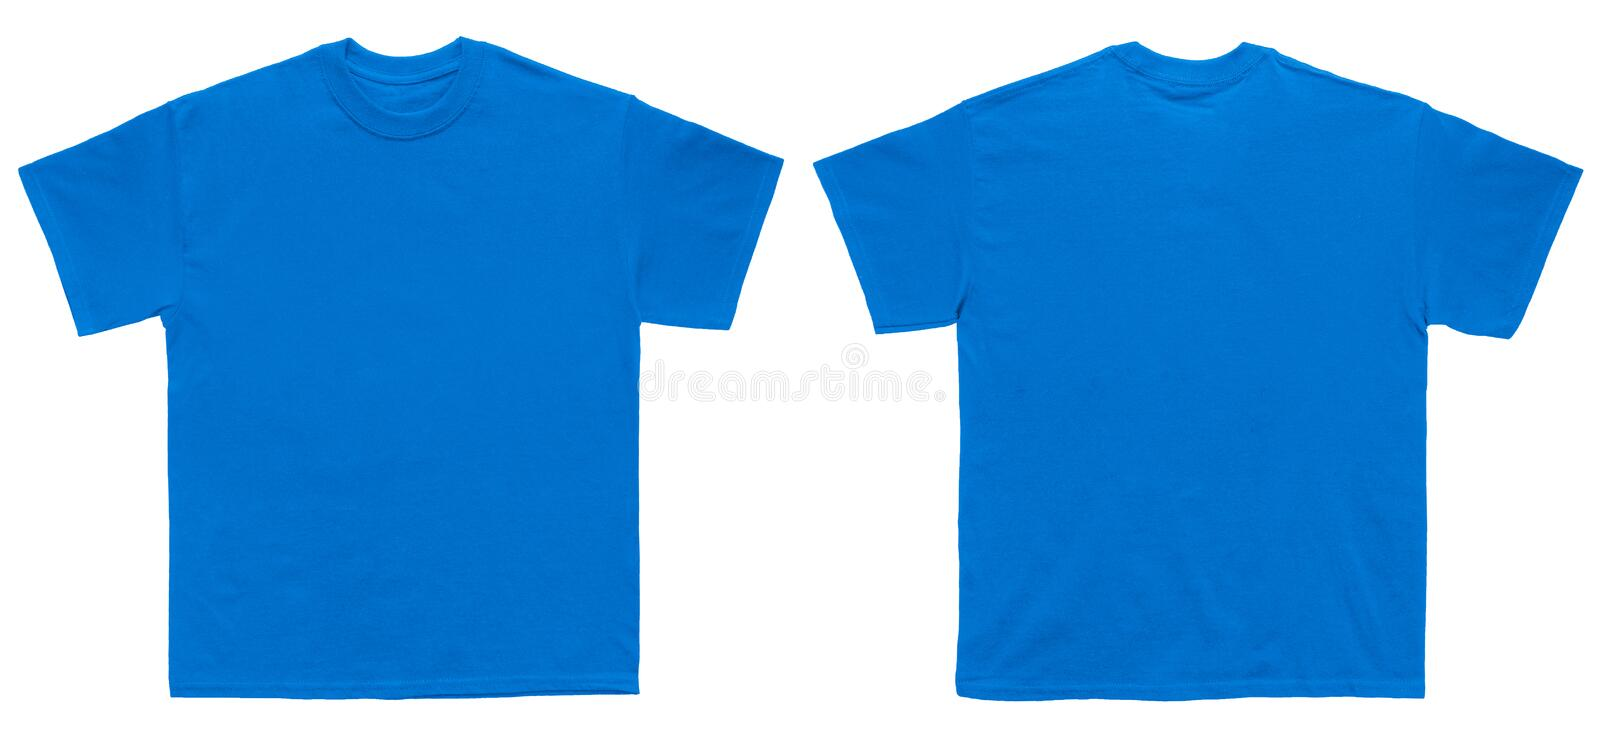 front back blue t shirt stock images download 1308